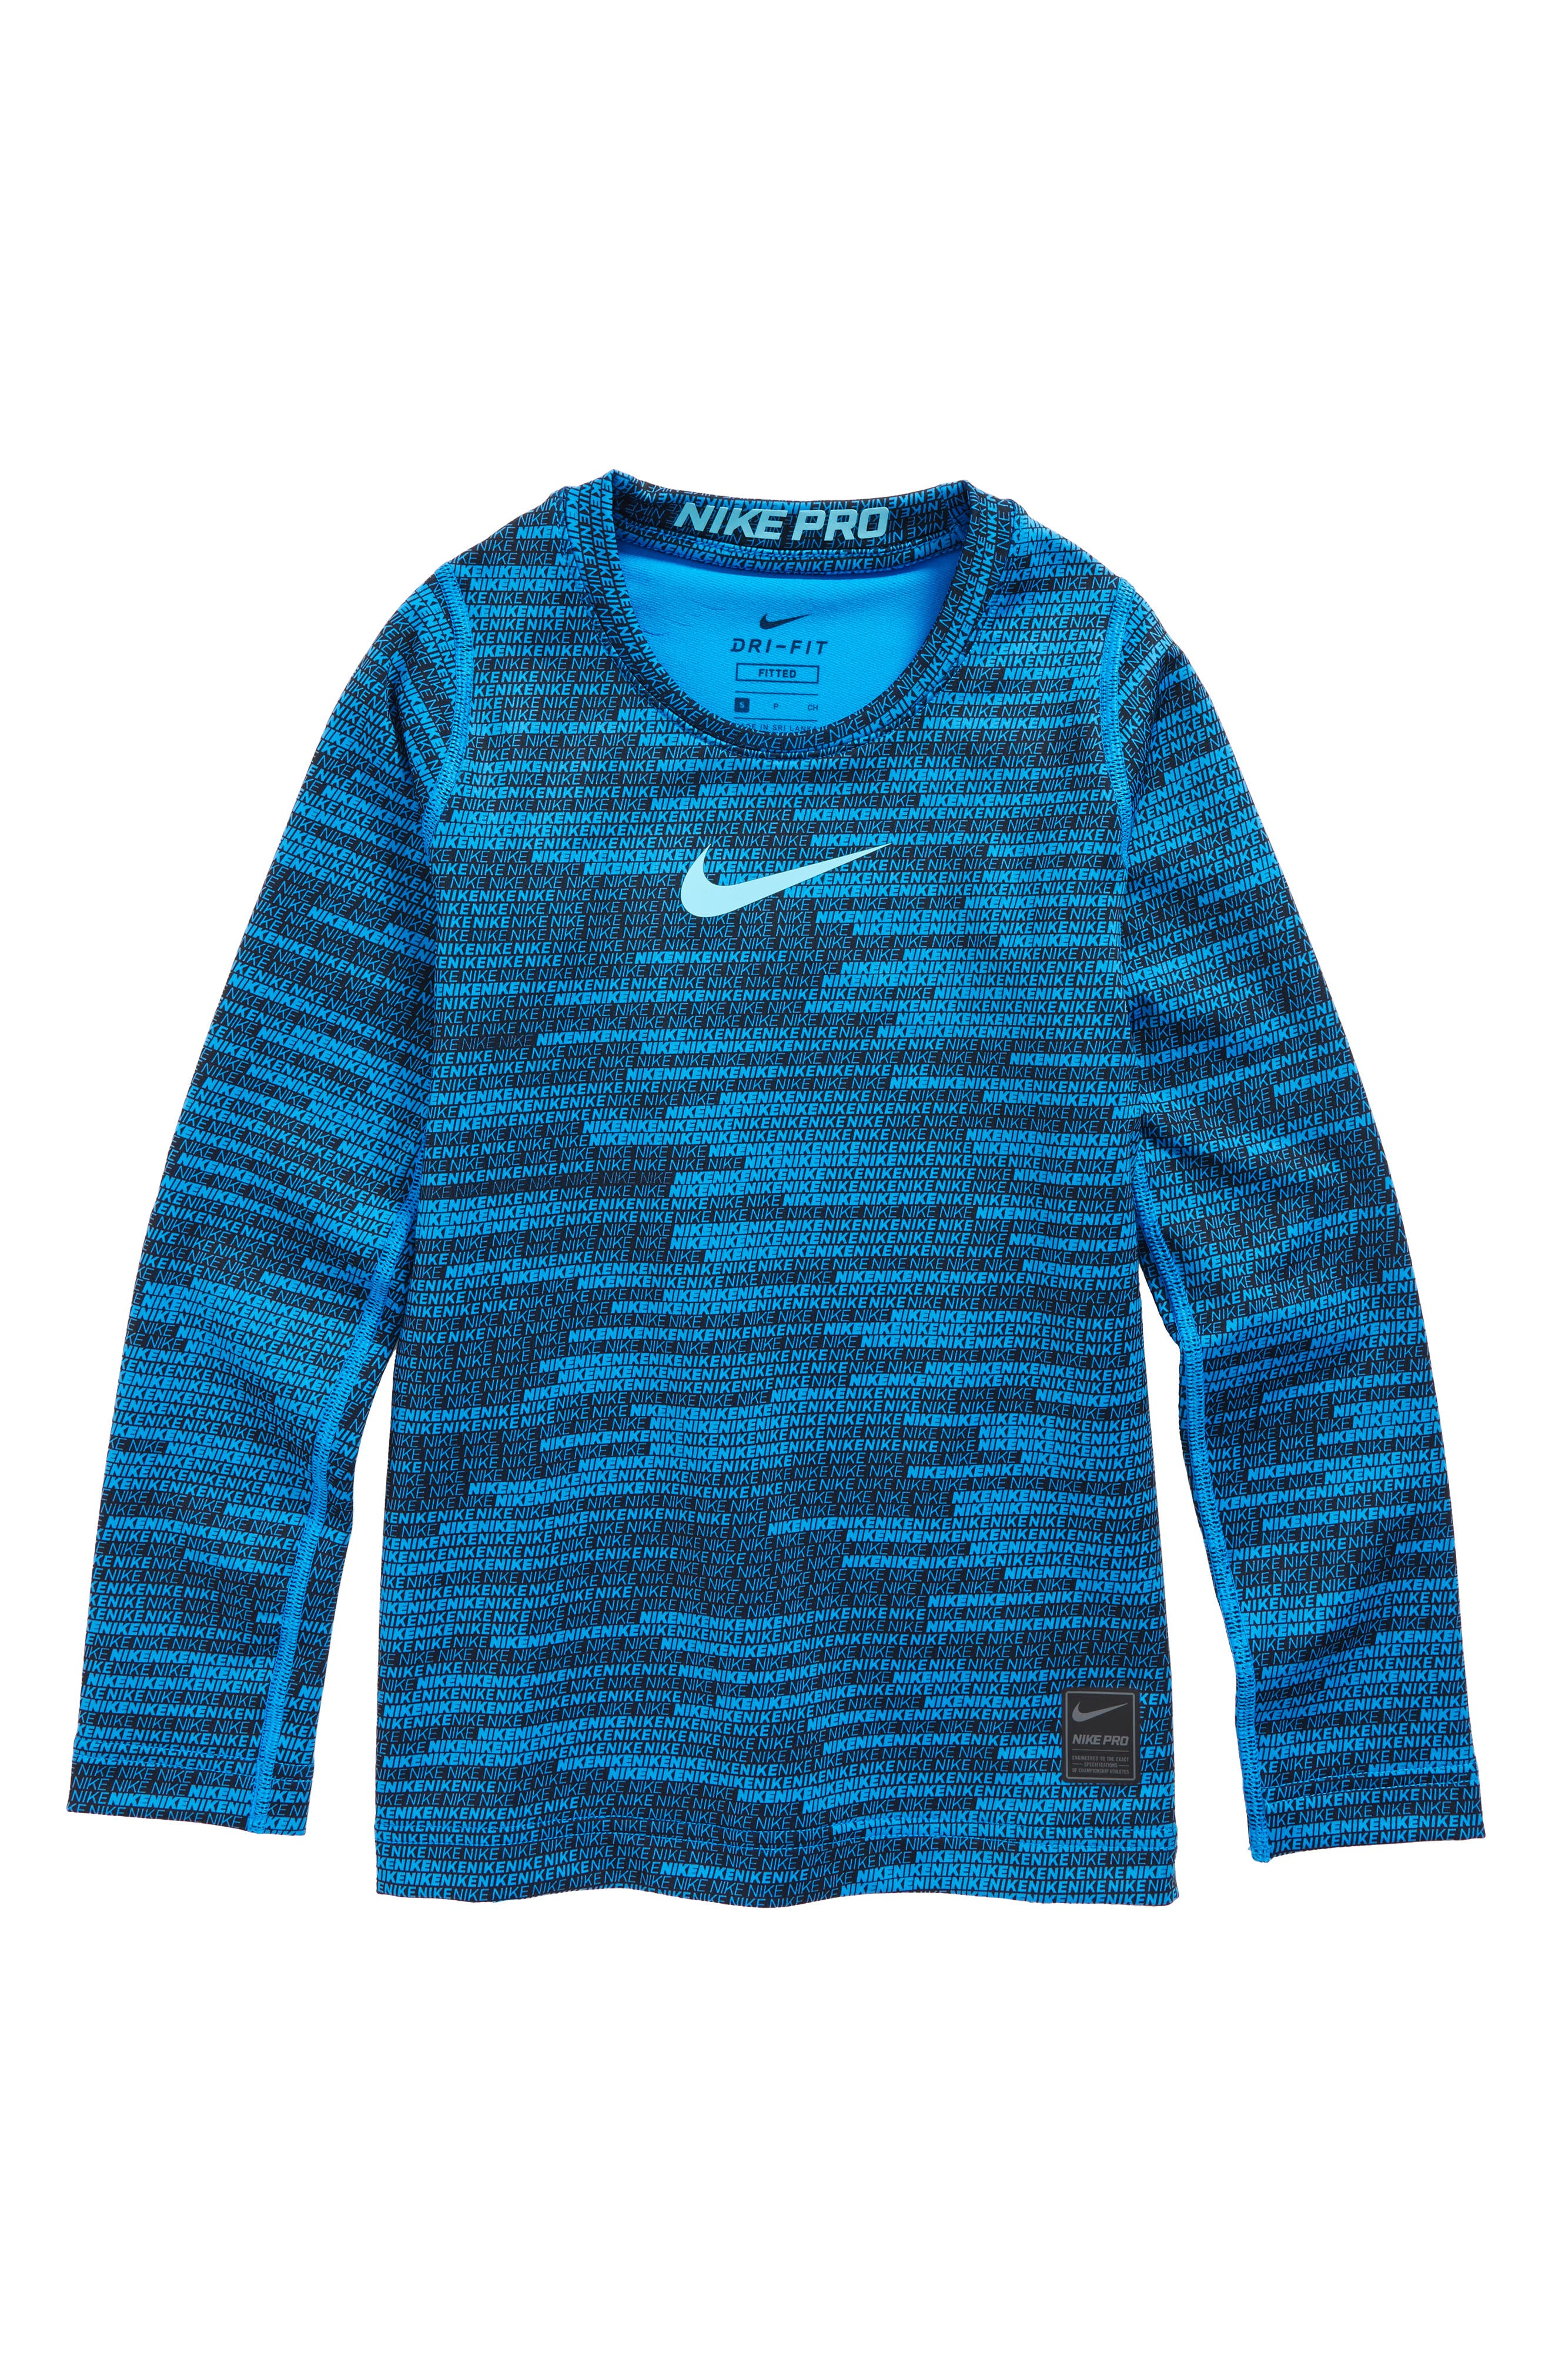 Pro Warm Training Top,                             Main thumbnail 1, color,                             435